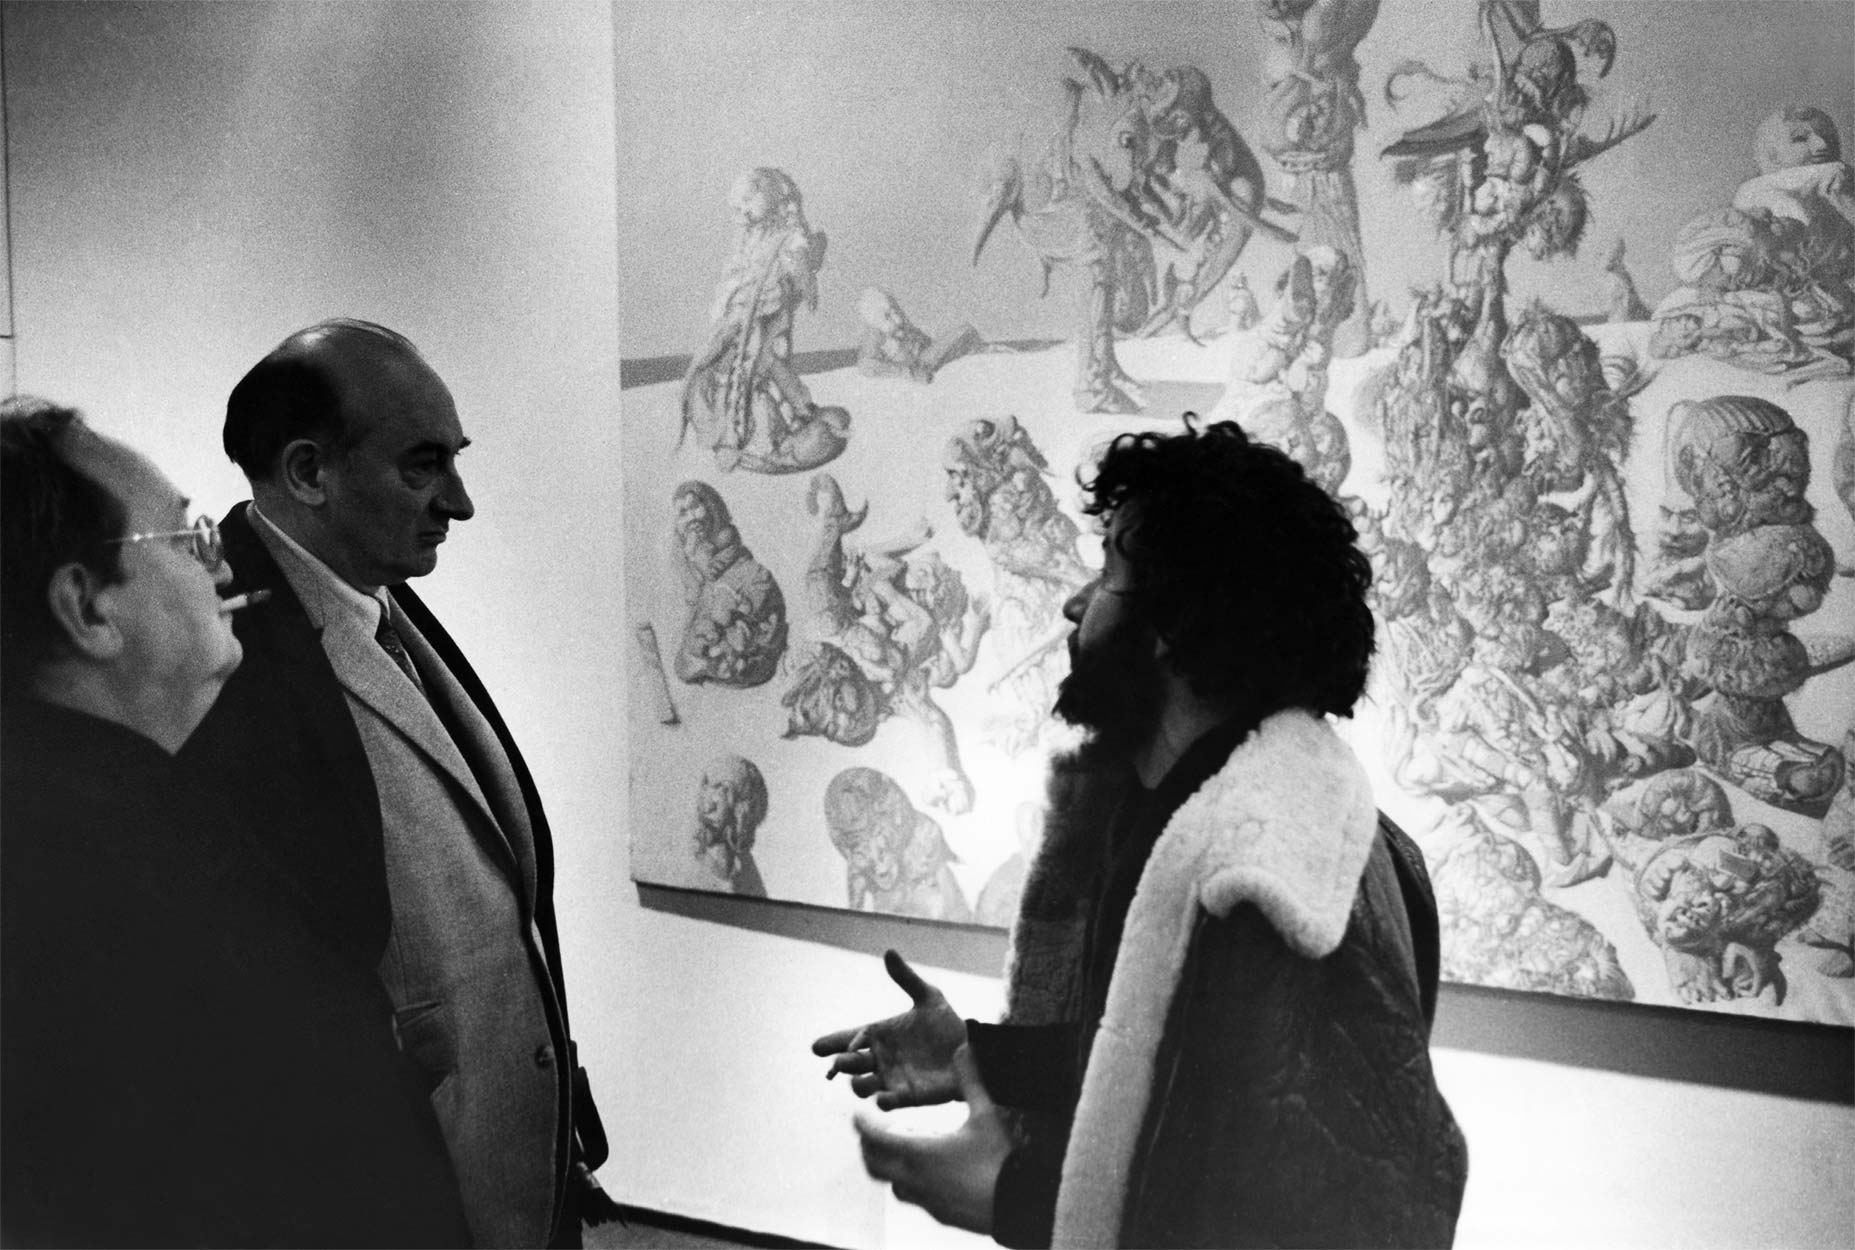 François Mathey, Gaëtan Picon and Dado at the vernissage of the exhibition at the C.N.A.C. of 1970